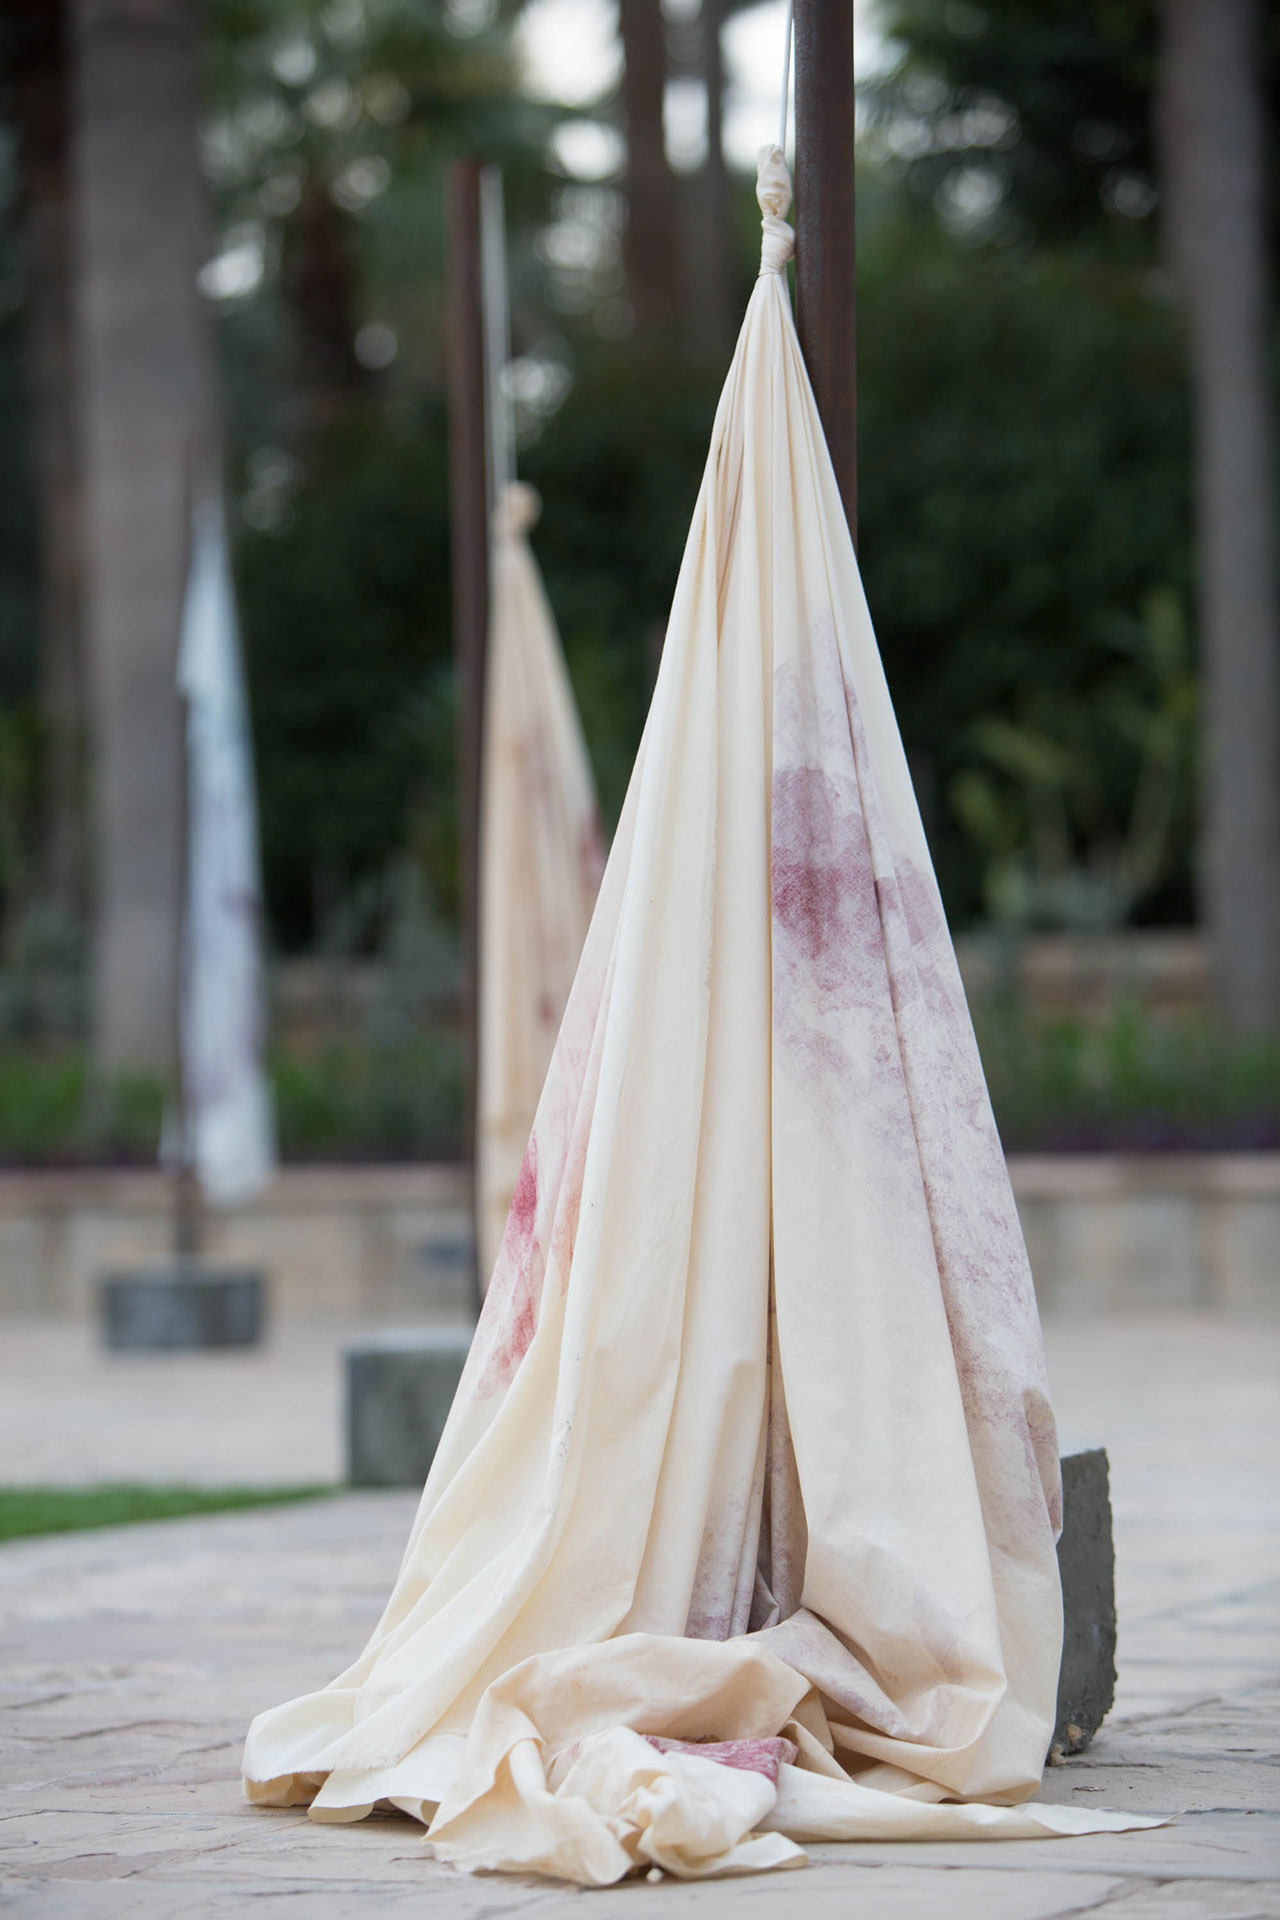 Moza Almatrooshi, Markings I, 2016. Installation view at the gardens of Madinat Jumeirah. Photo by Daniella Baptista, courtesy Art Dubai.